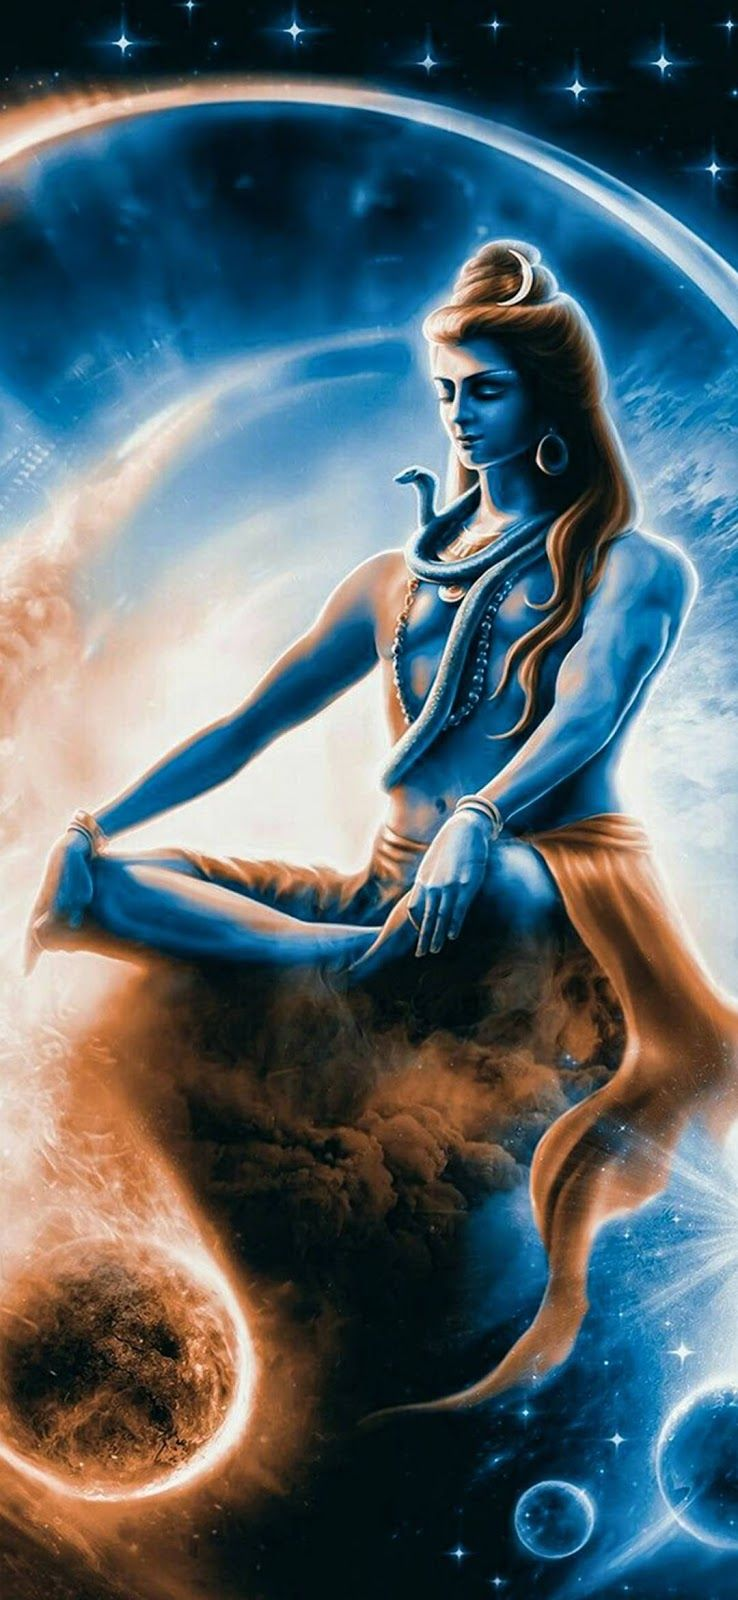 Most Unique And Ultra Hd Shiva Wallpapers Hindu God Mahadev Full Hd Wallpaper For Mobile Screen Mahakaal Wa In 2020 Lord Shiva Hd Wallpaper Shiva Wallpaper Lord Shiva